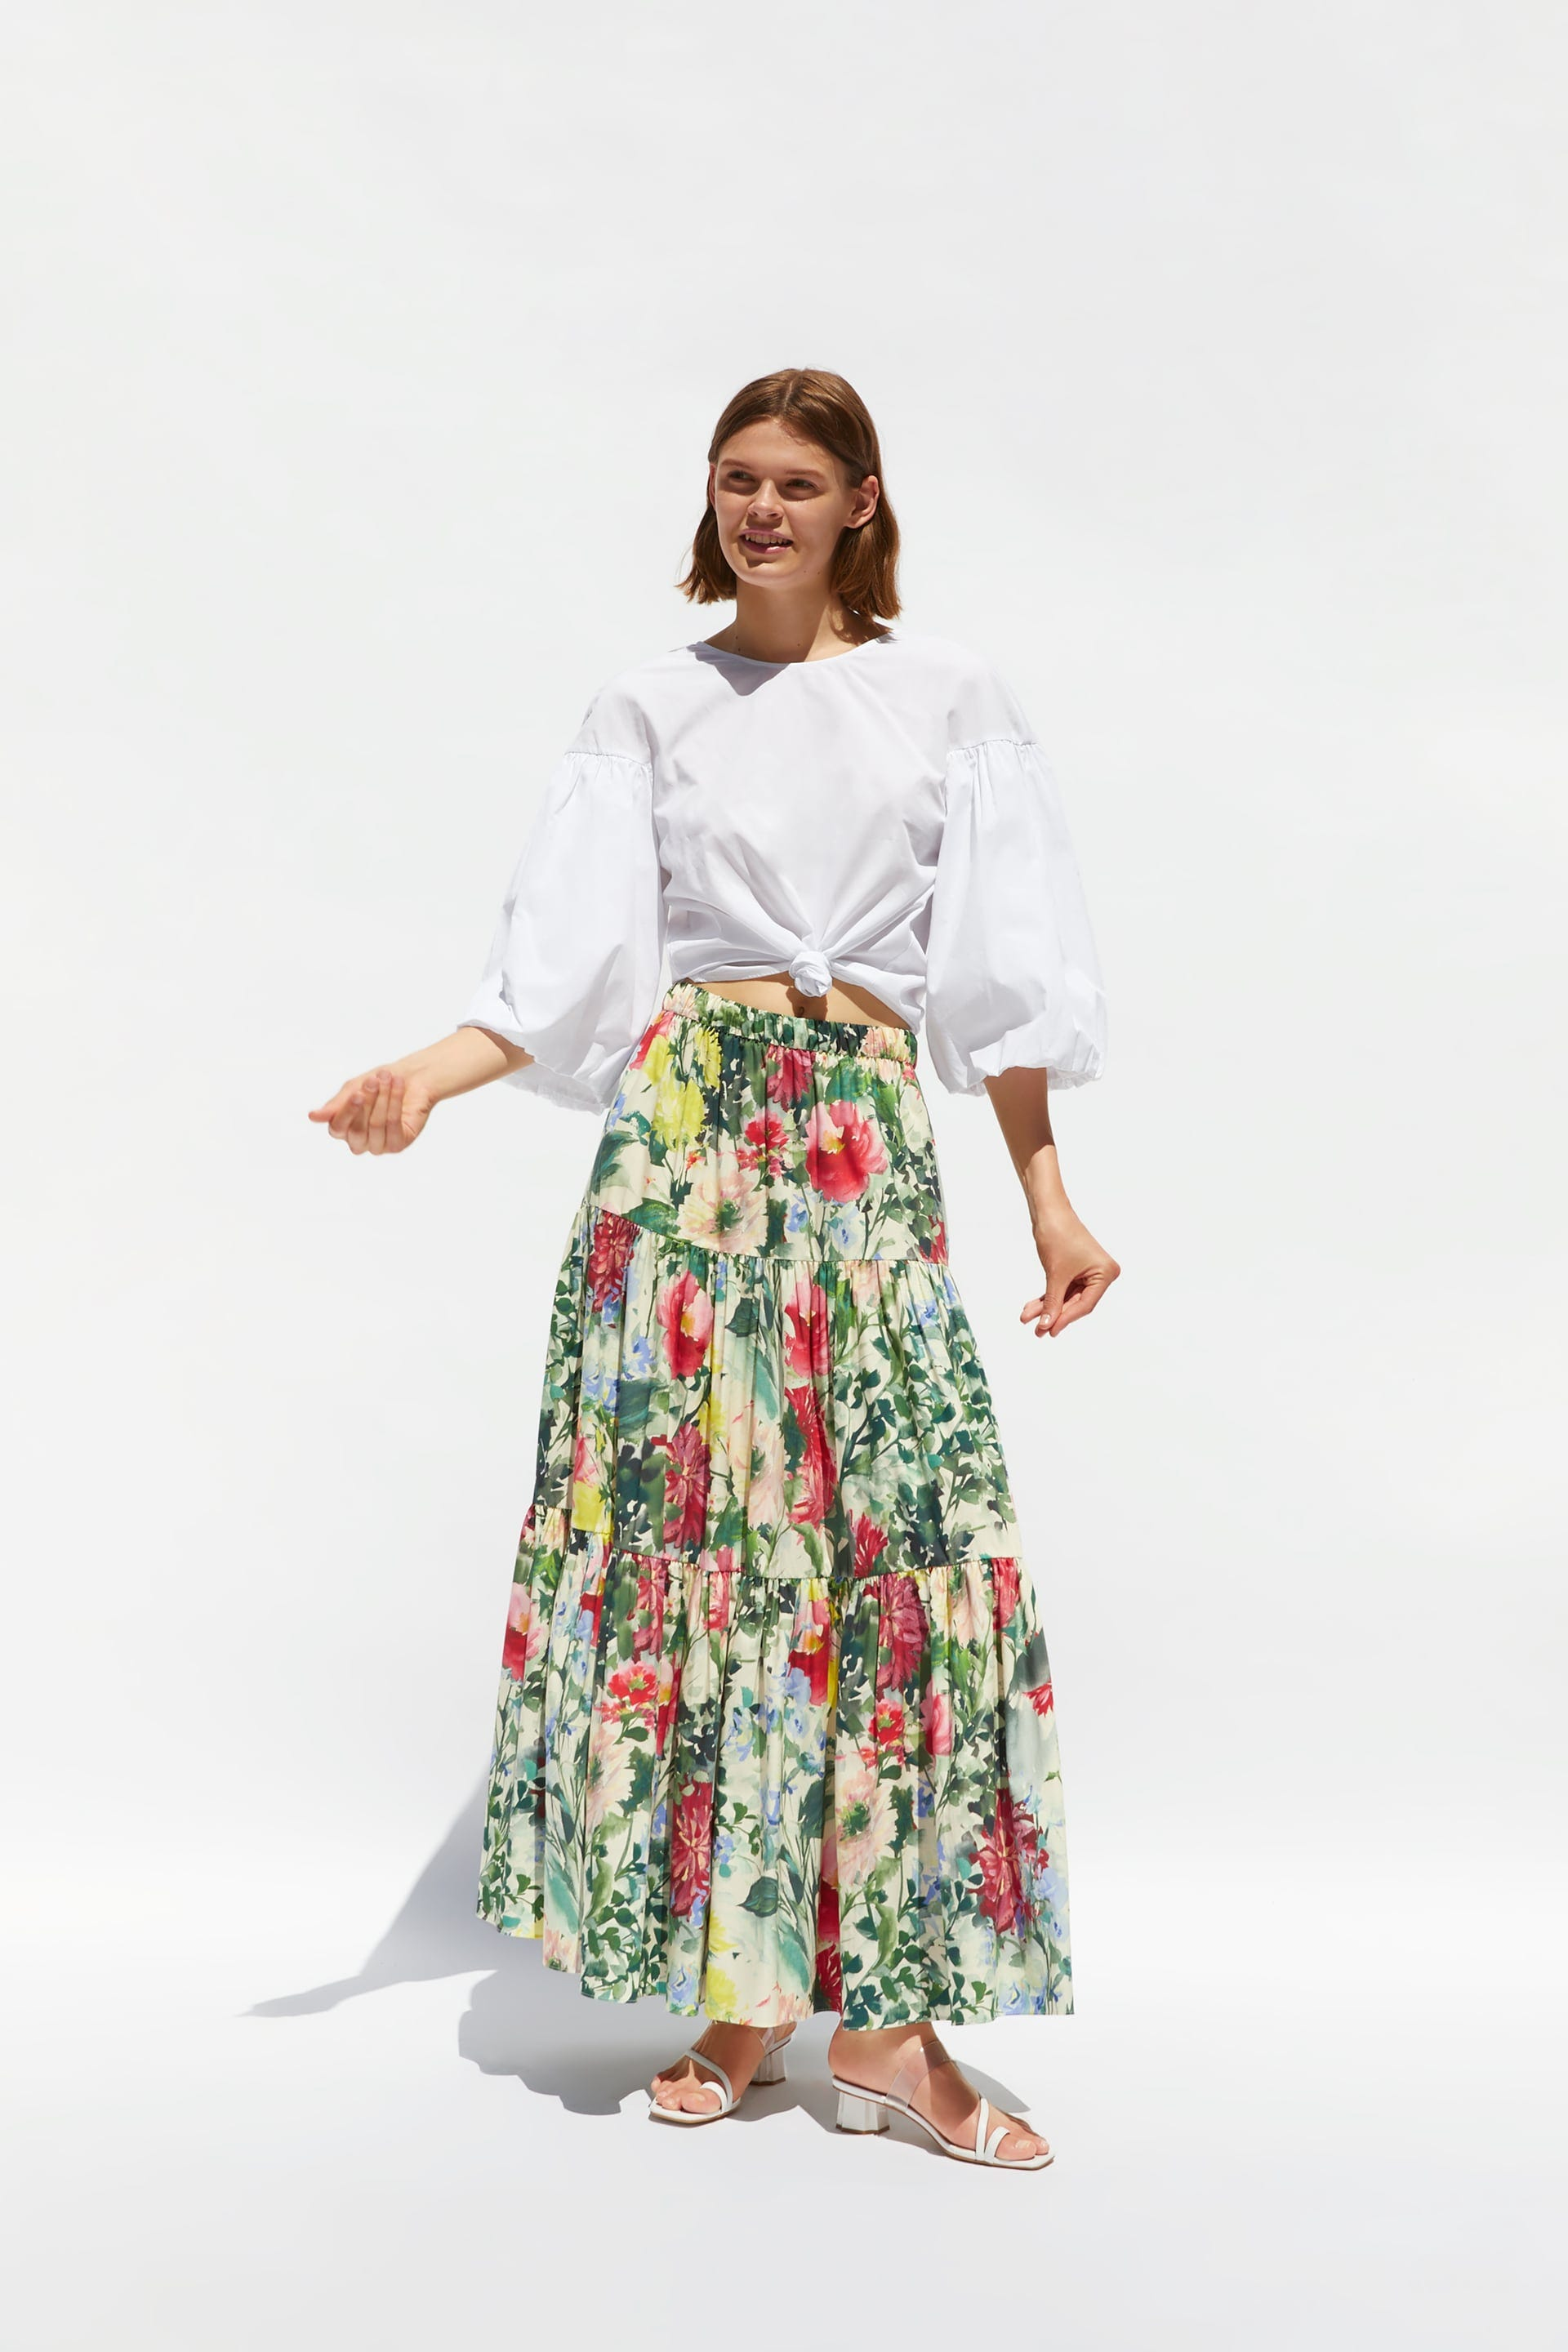 dde0eaeb9 Zara Best Sellers Summer 2019 Popular Things To Buy